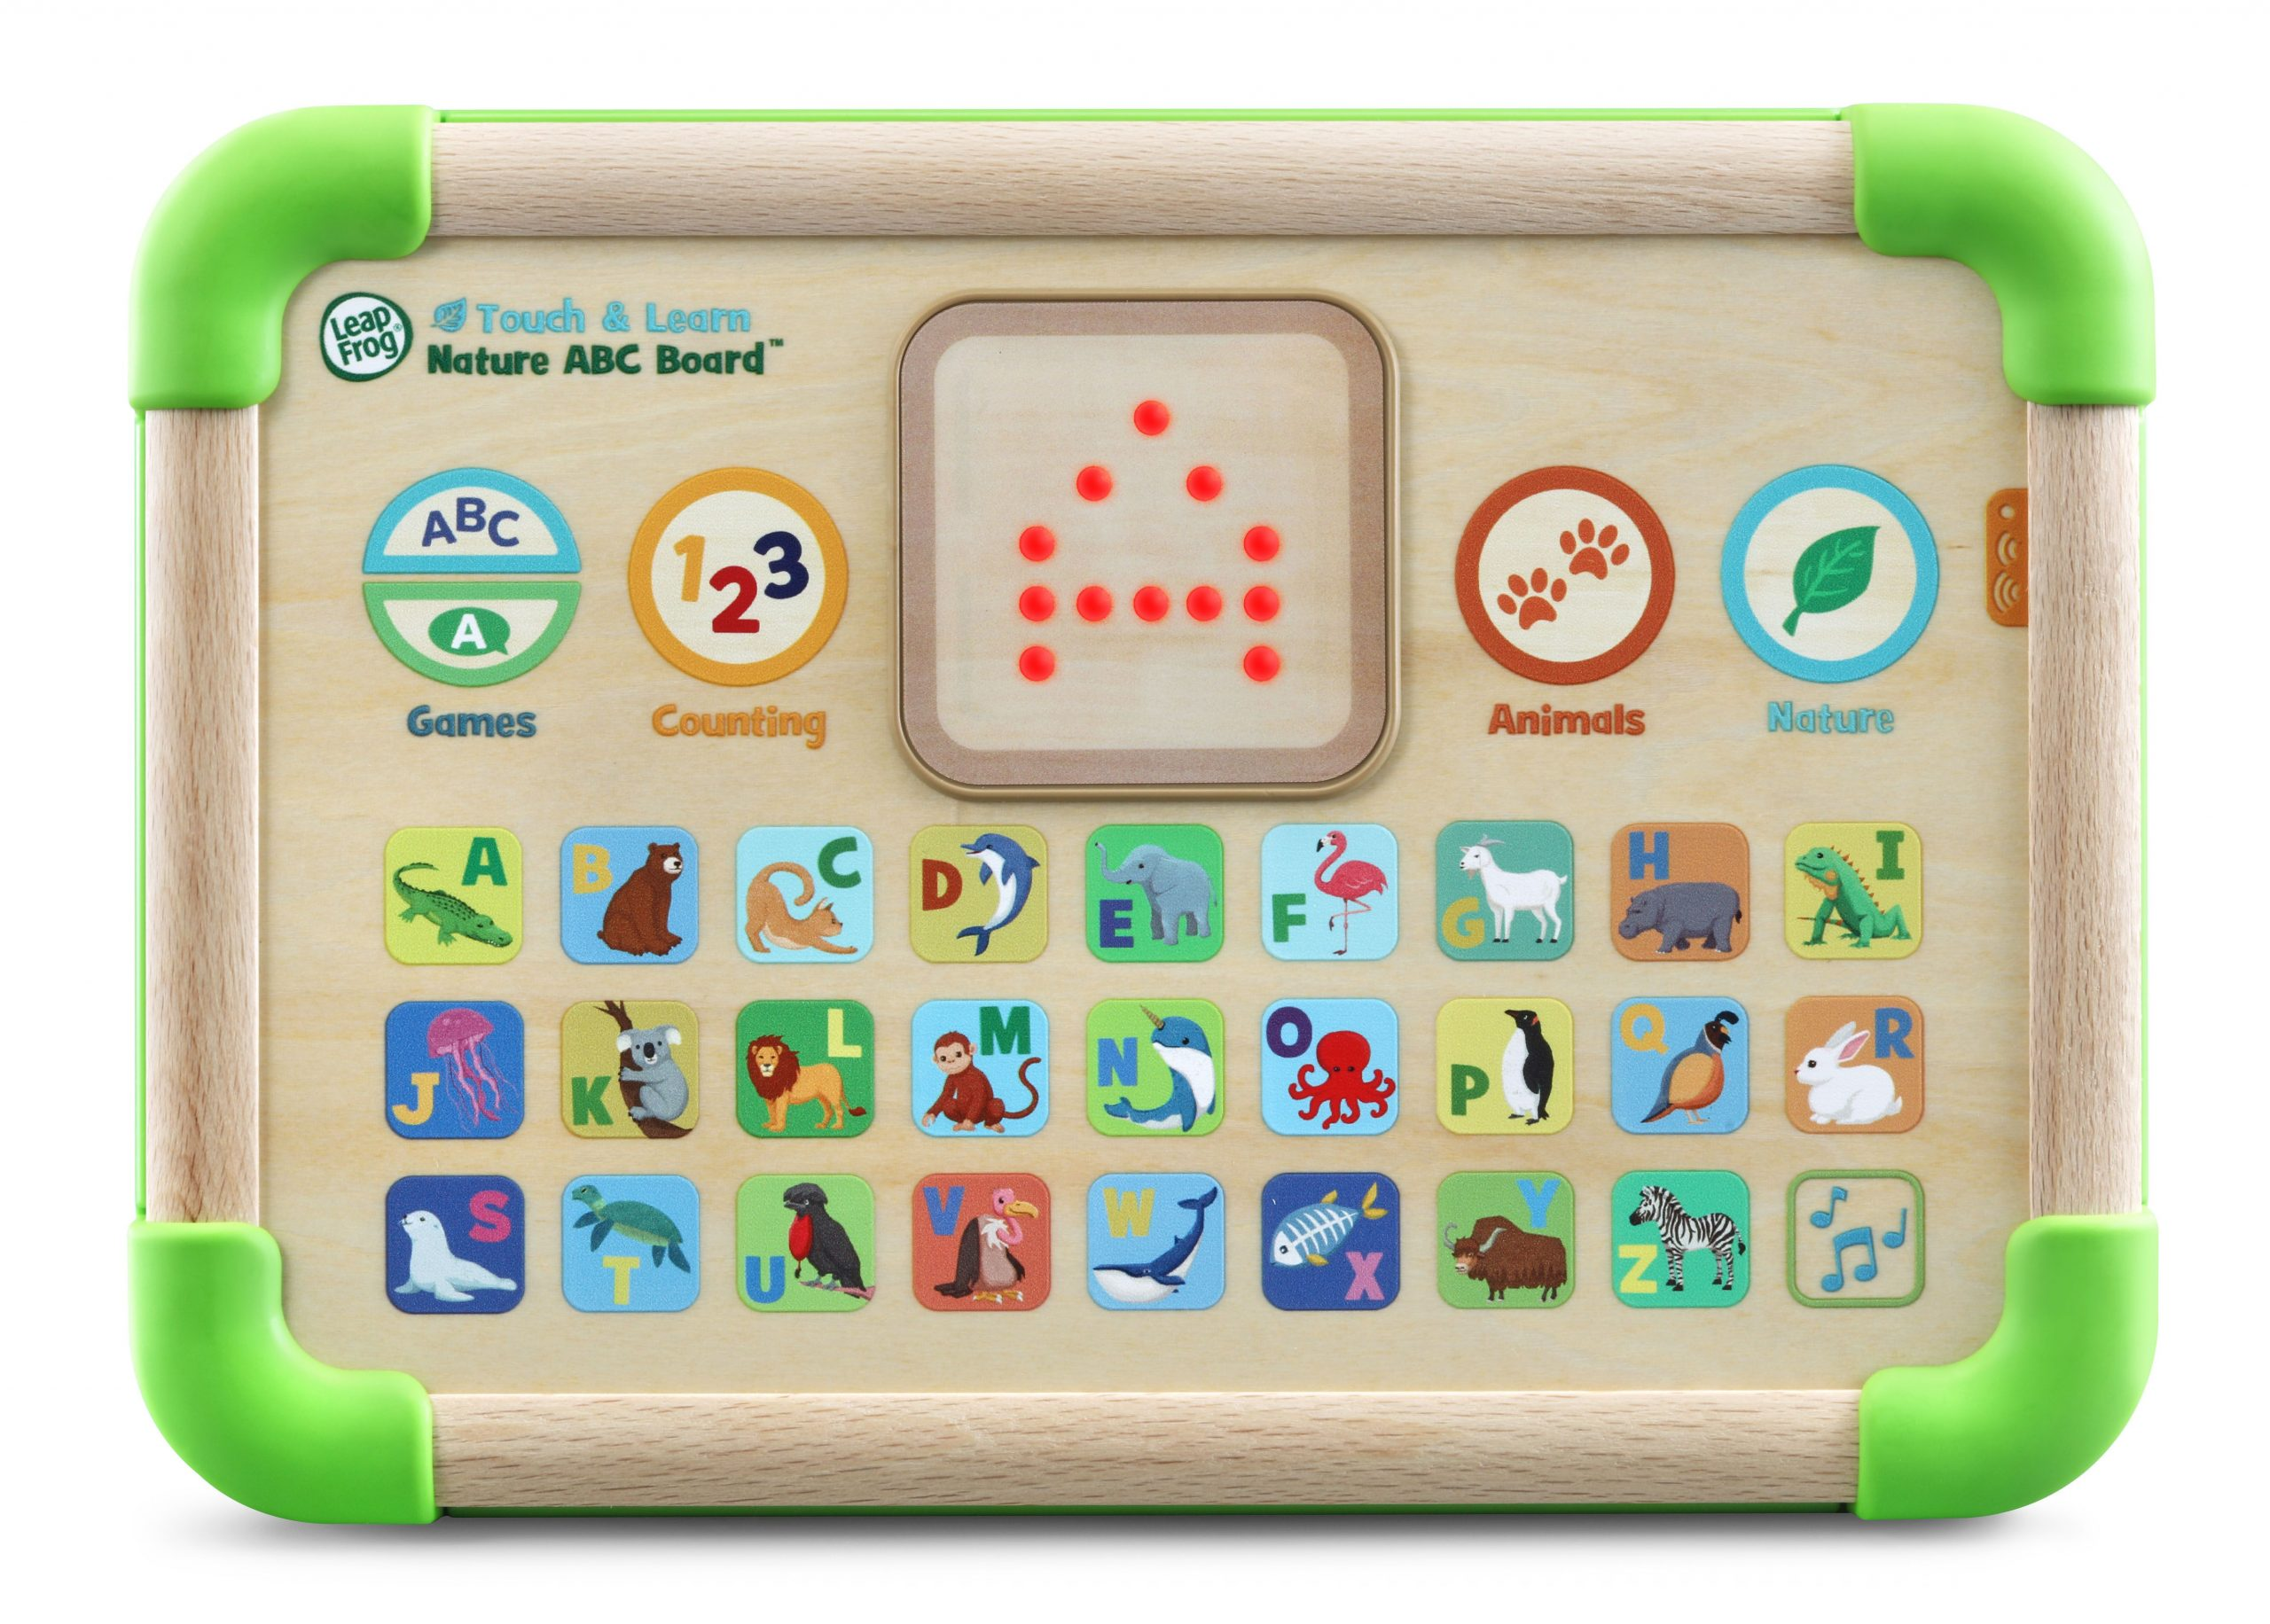 Touch & Learn Nature ABC Board™